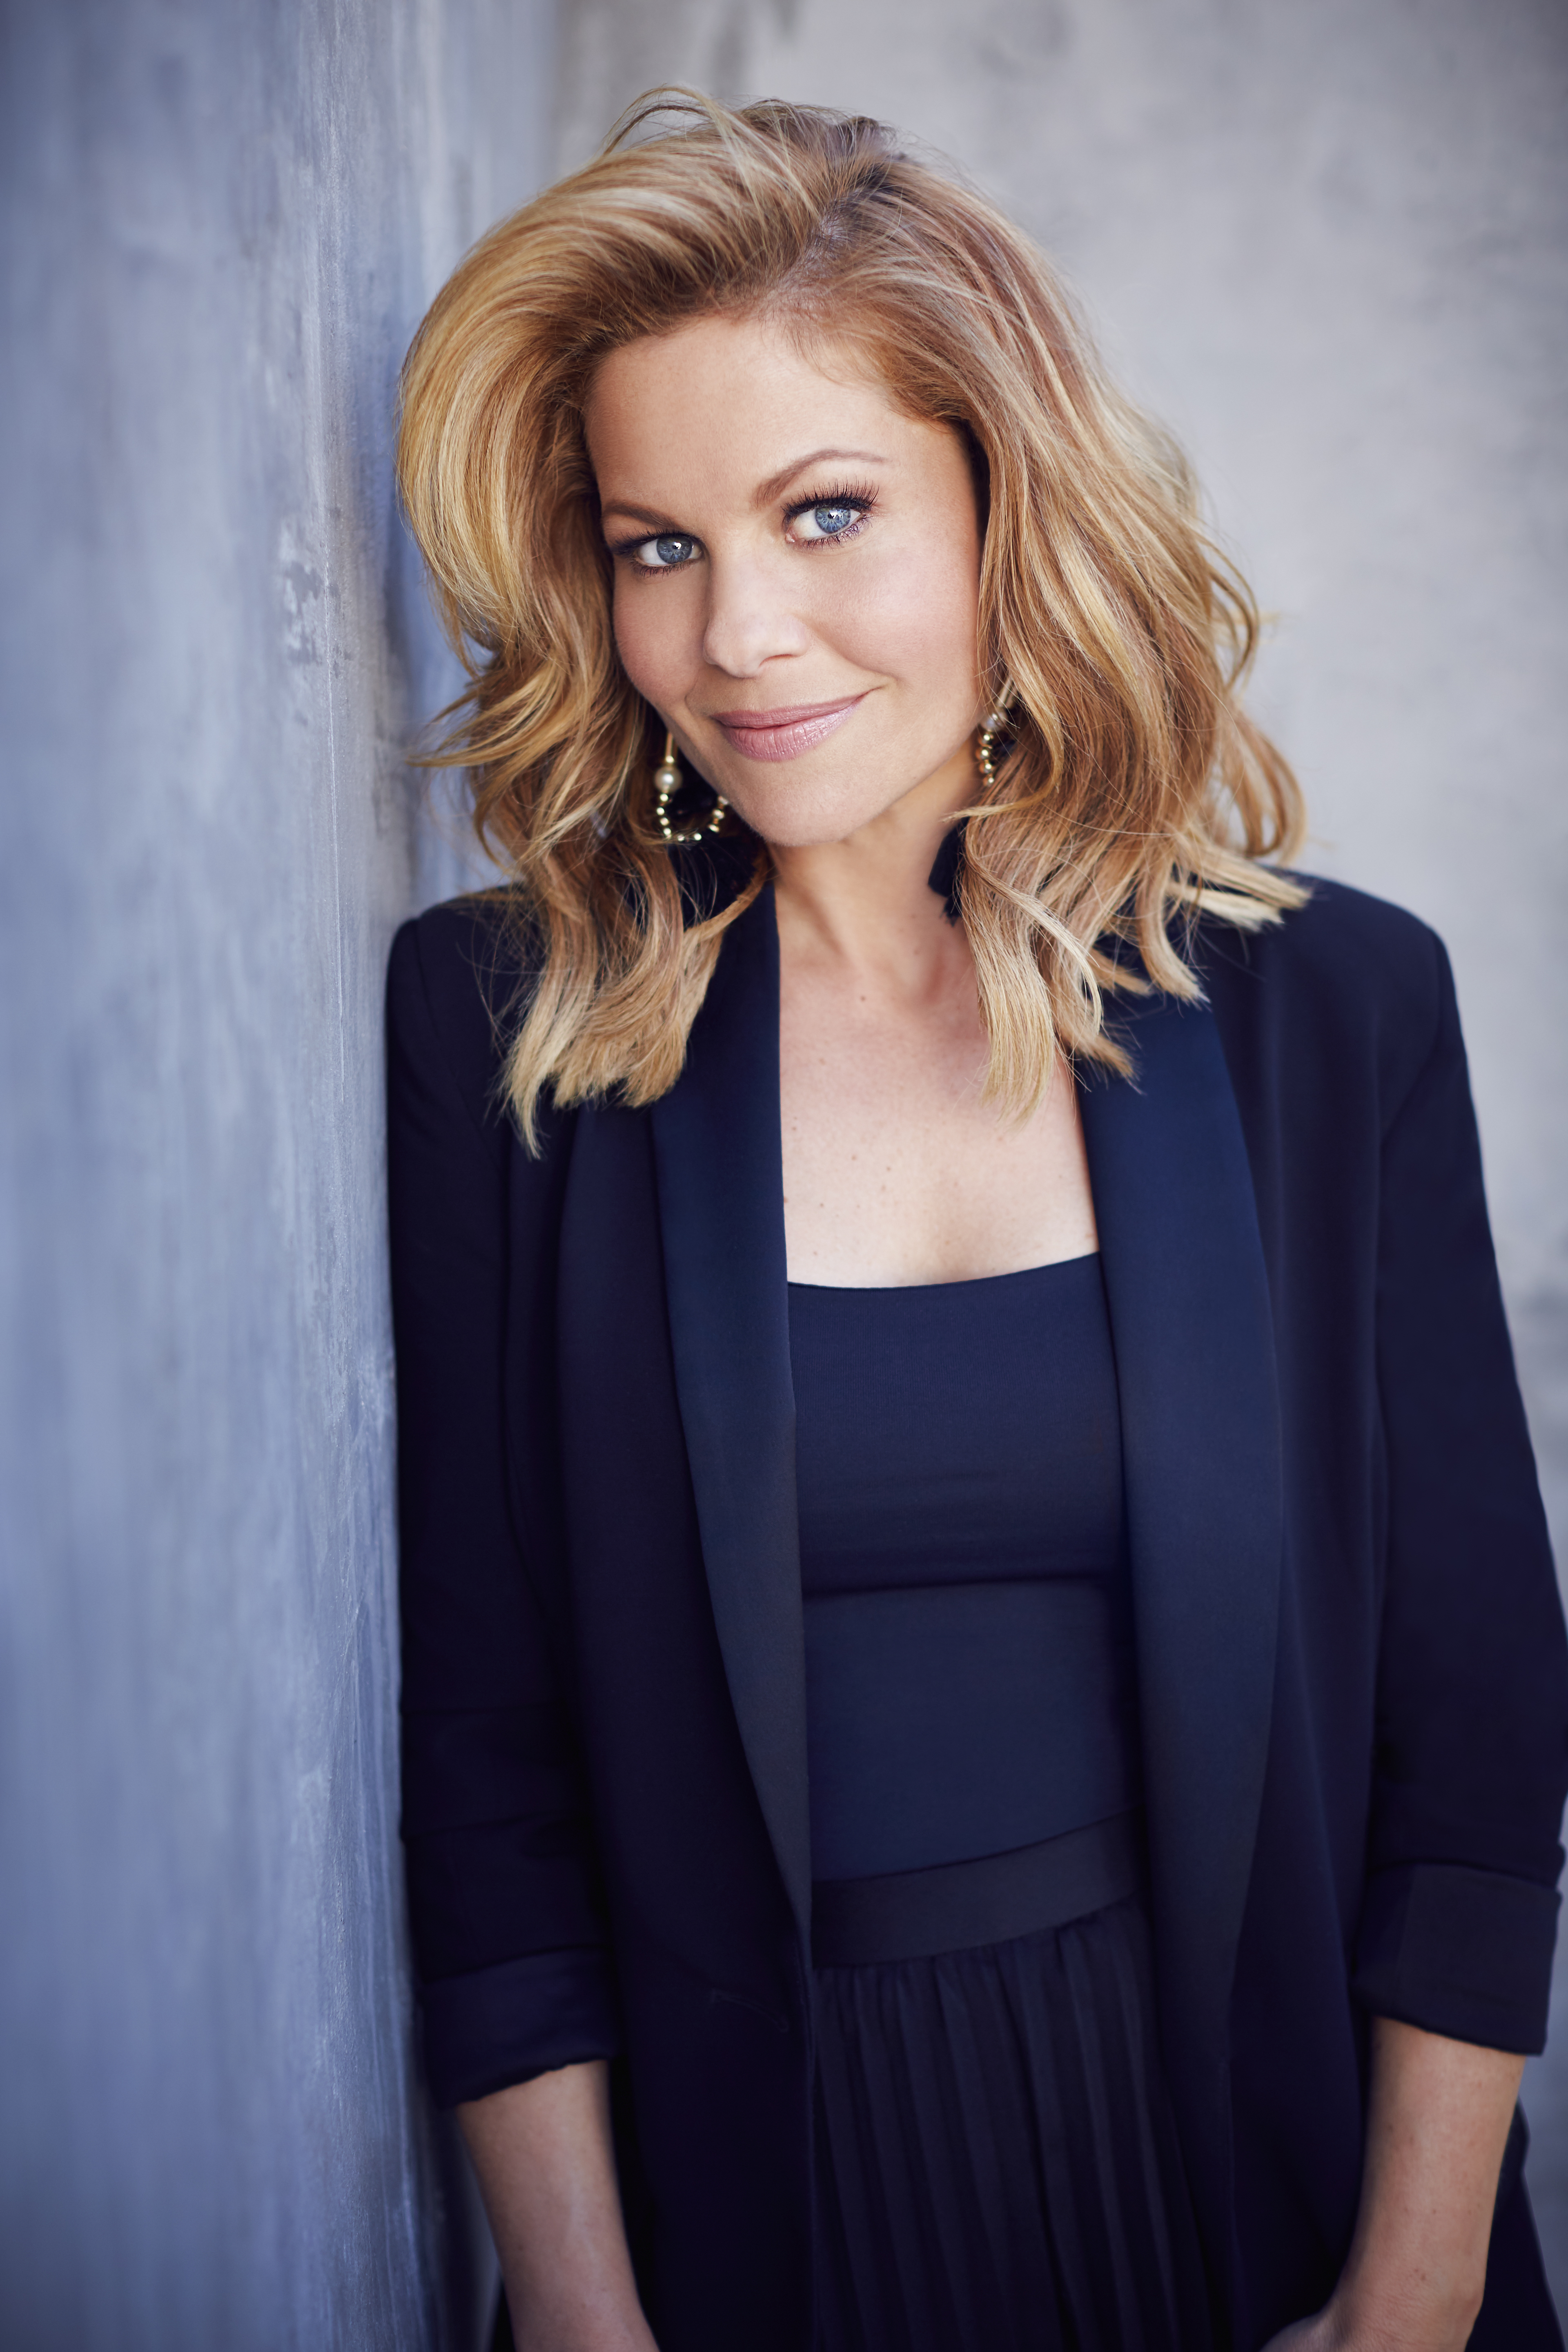 Candace Cameron Bure as featured on Jesus Calling podcast